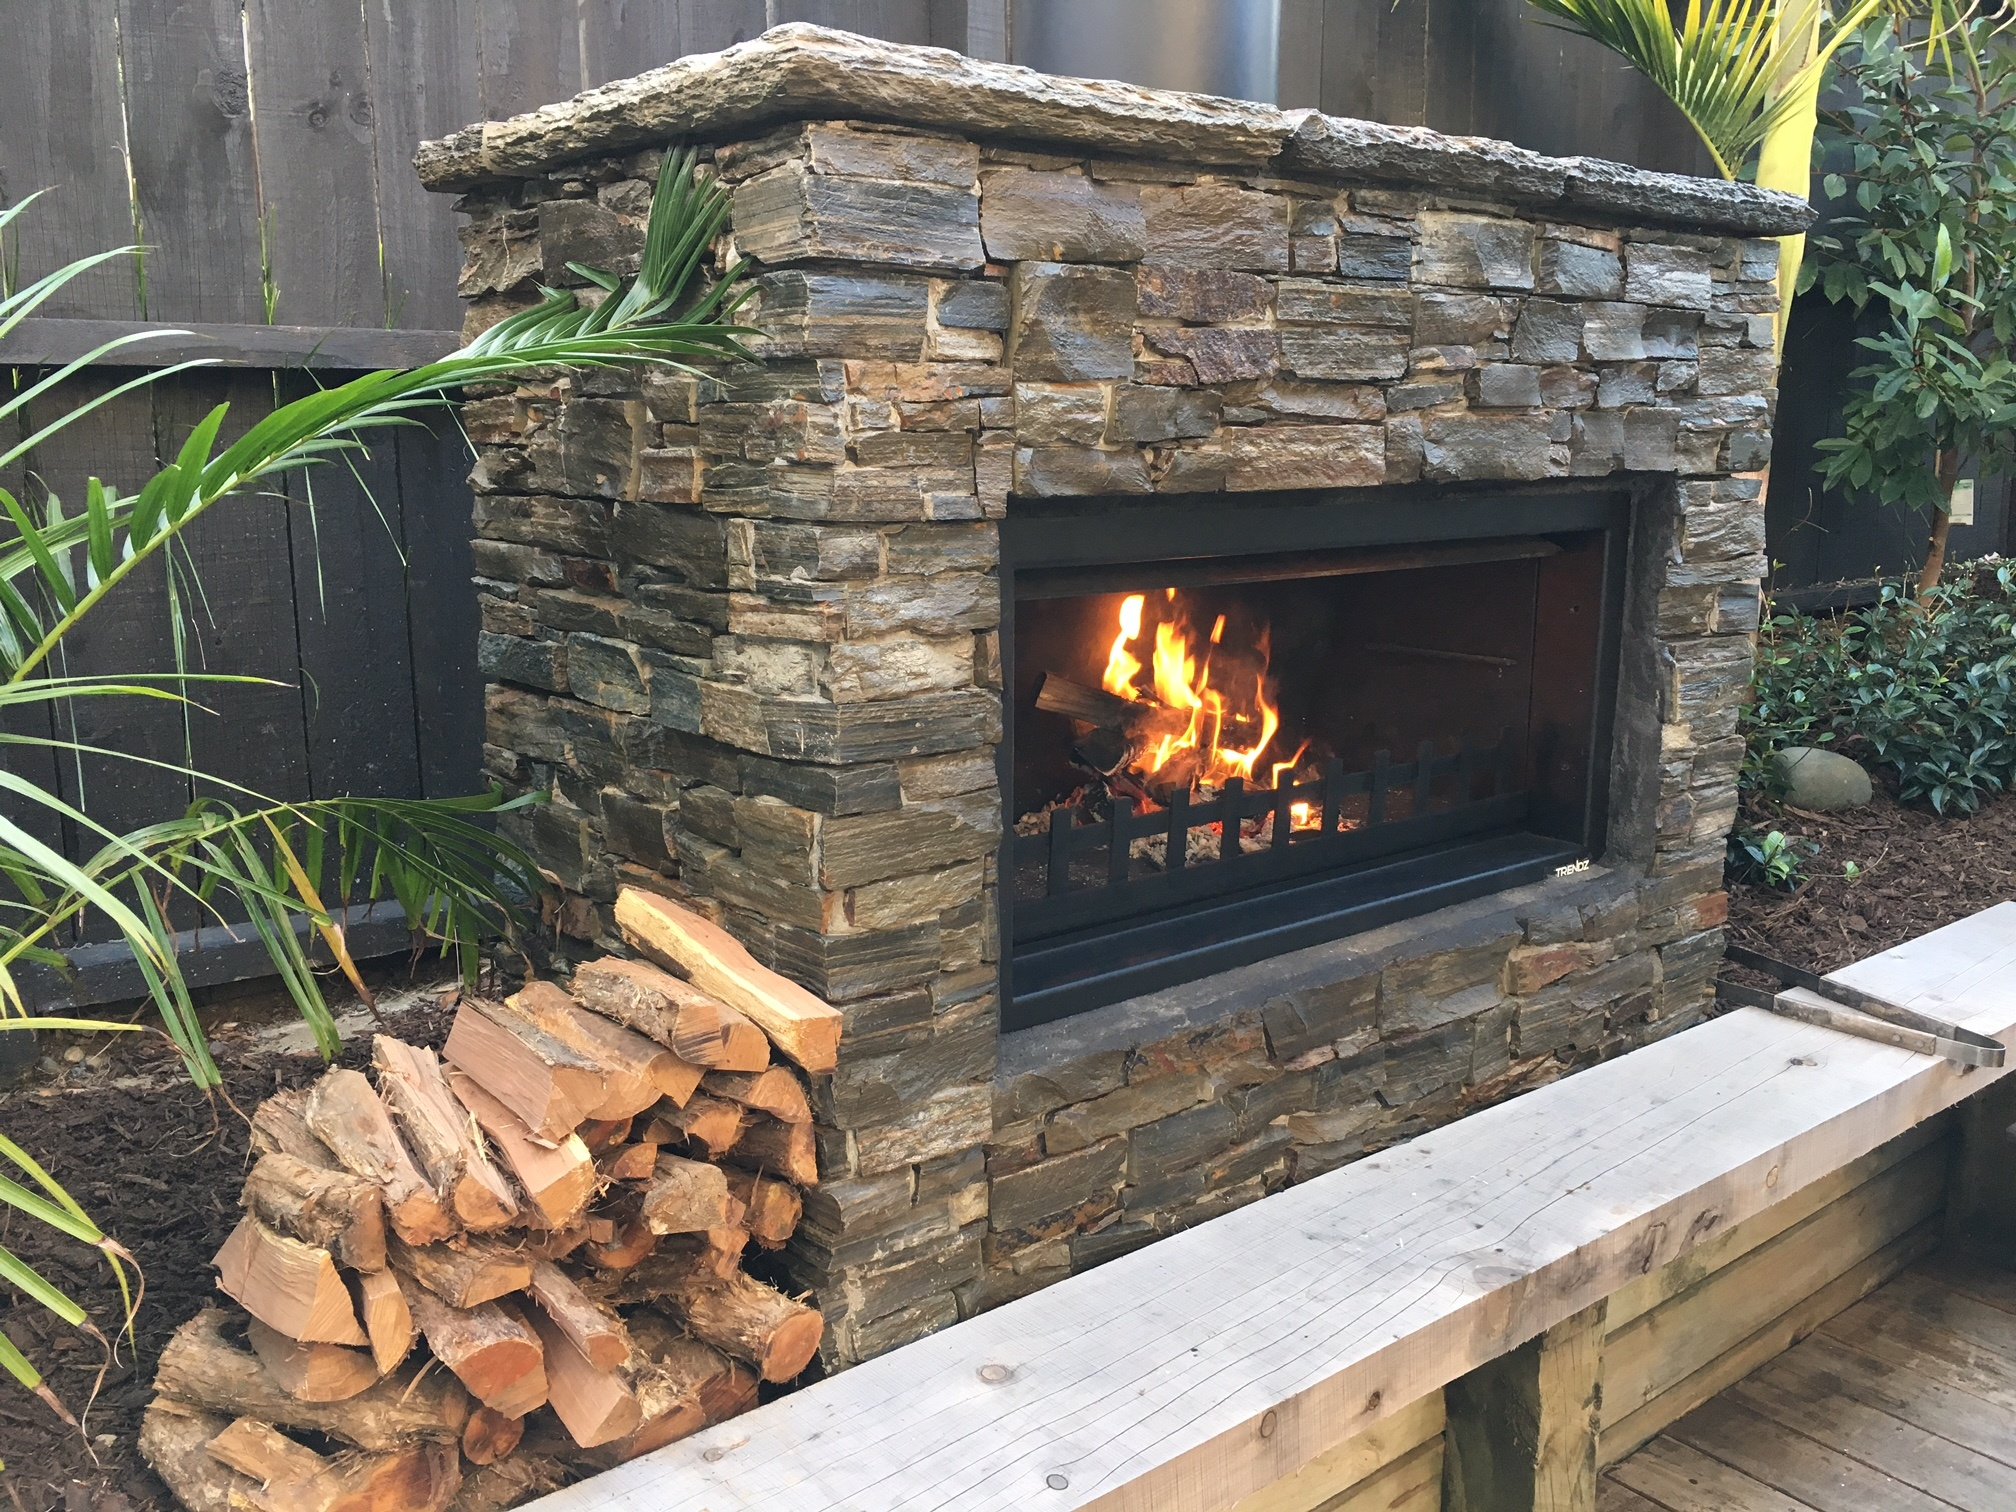 Buying a second-hand outdoor fireplace